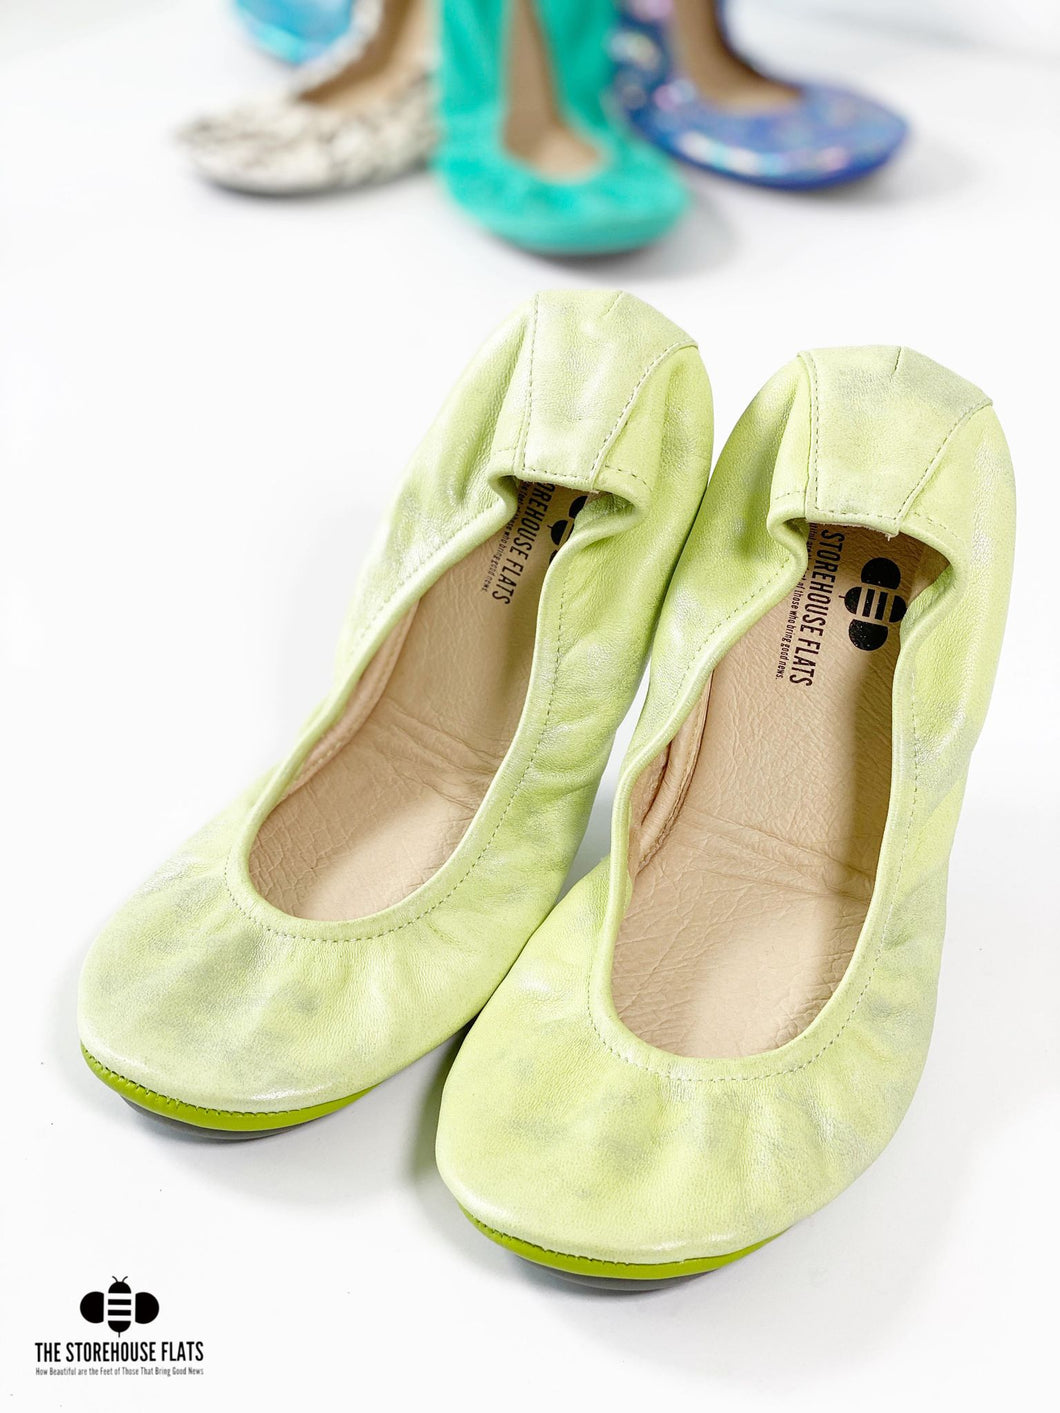 The Storehouse Flats Special Edition: Keylime Kiss (Pre-order)